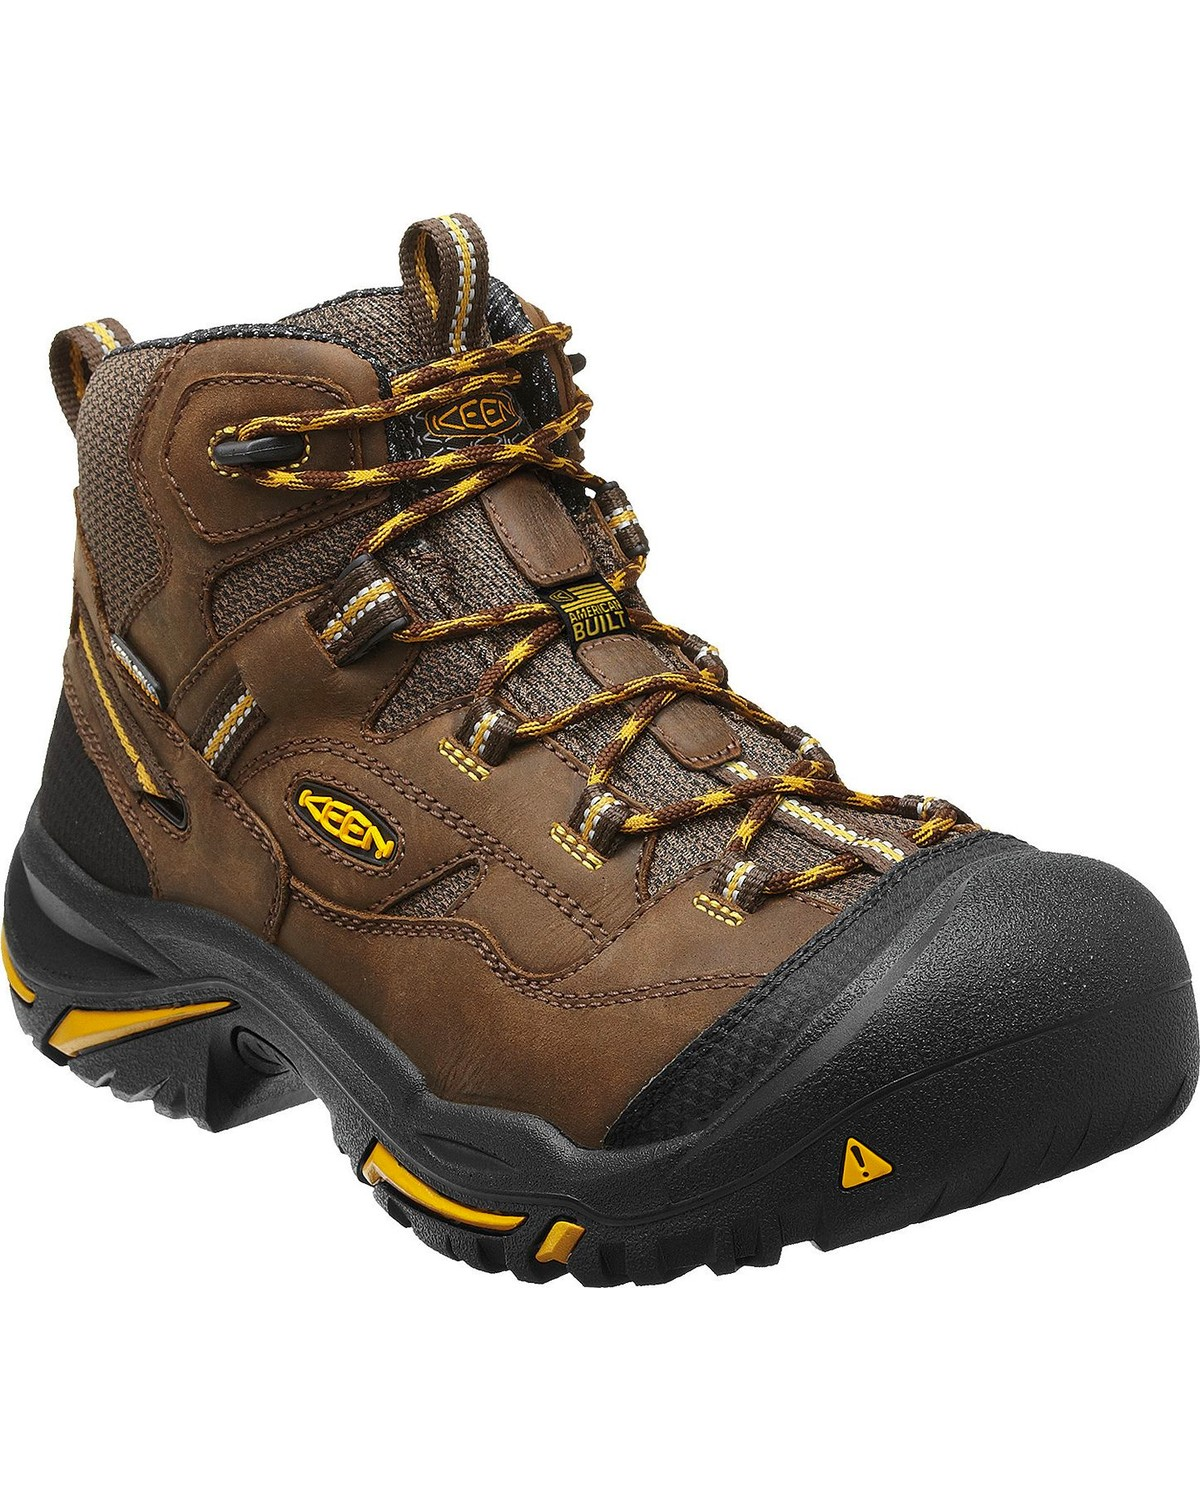 43c484855a5 Keen Men's Braddock Mid Waterproof Boots - Steel Toe